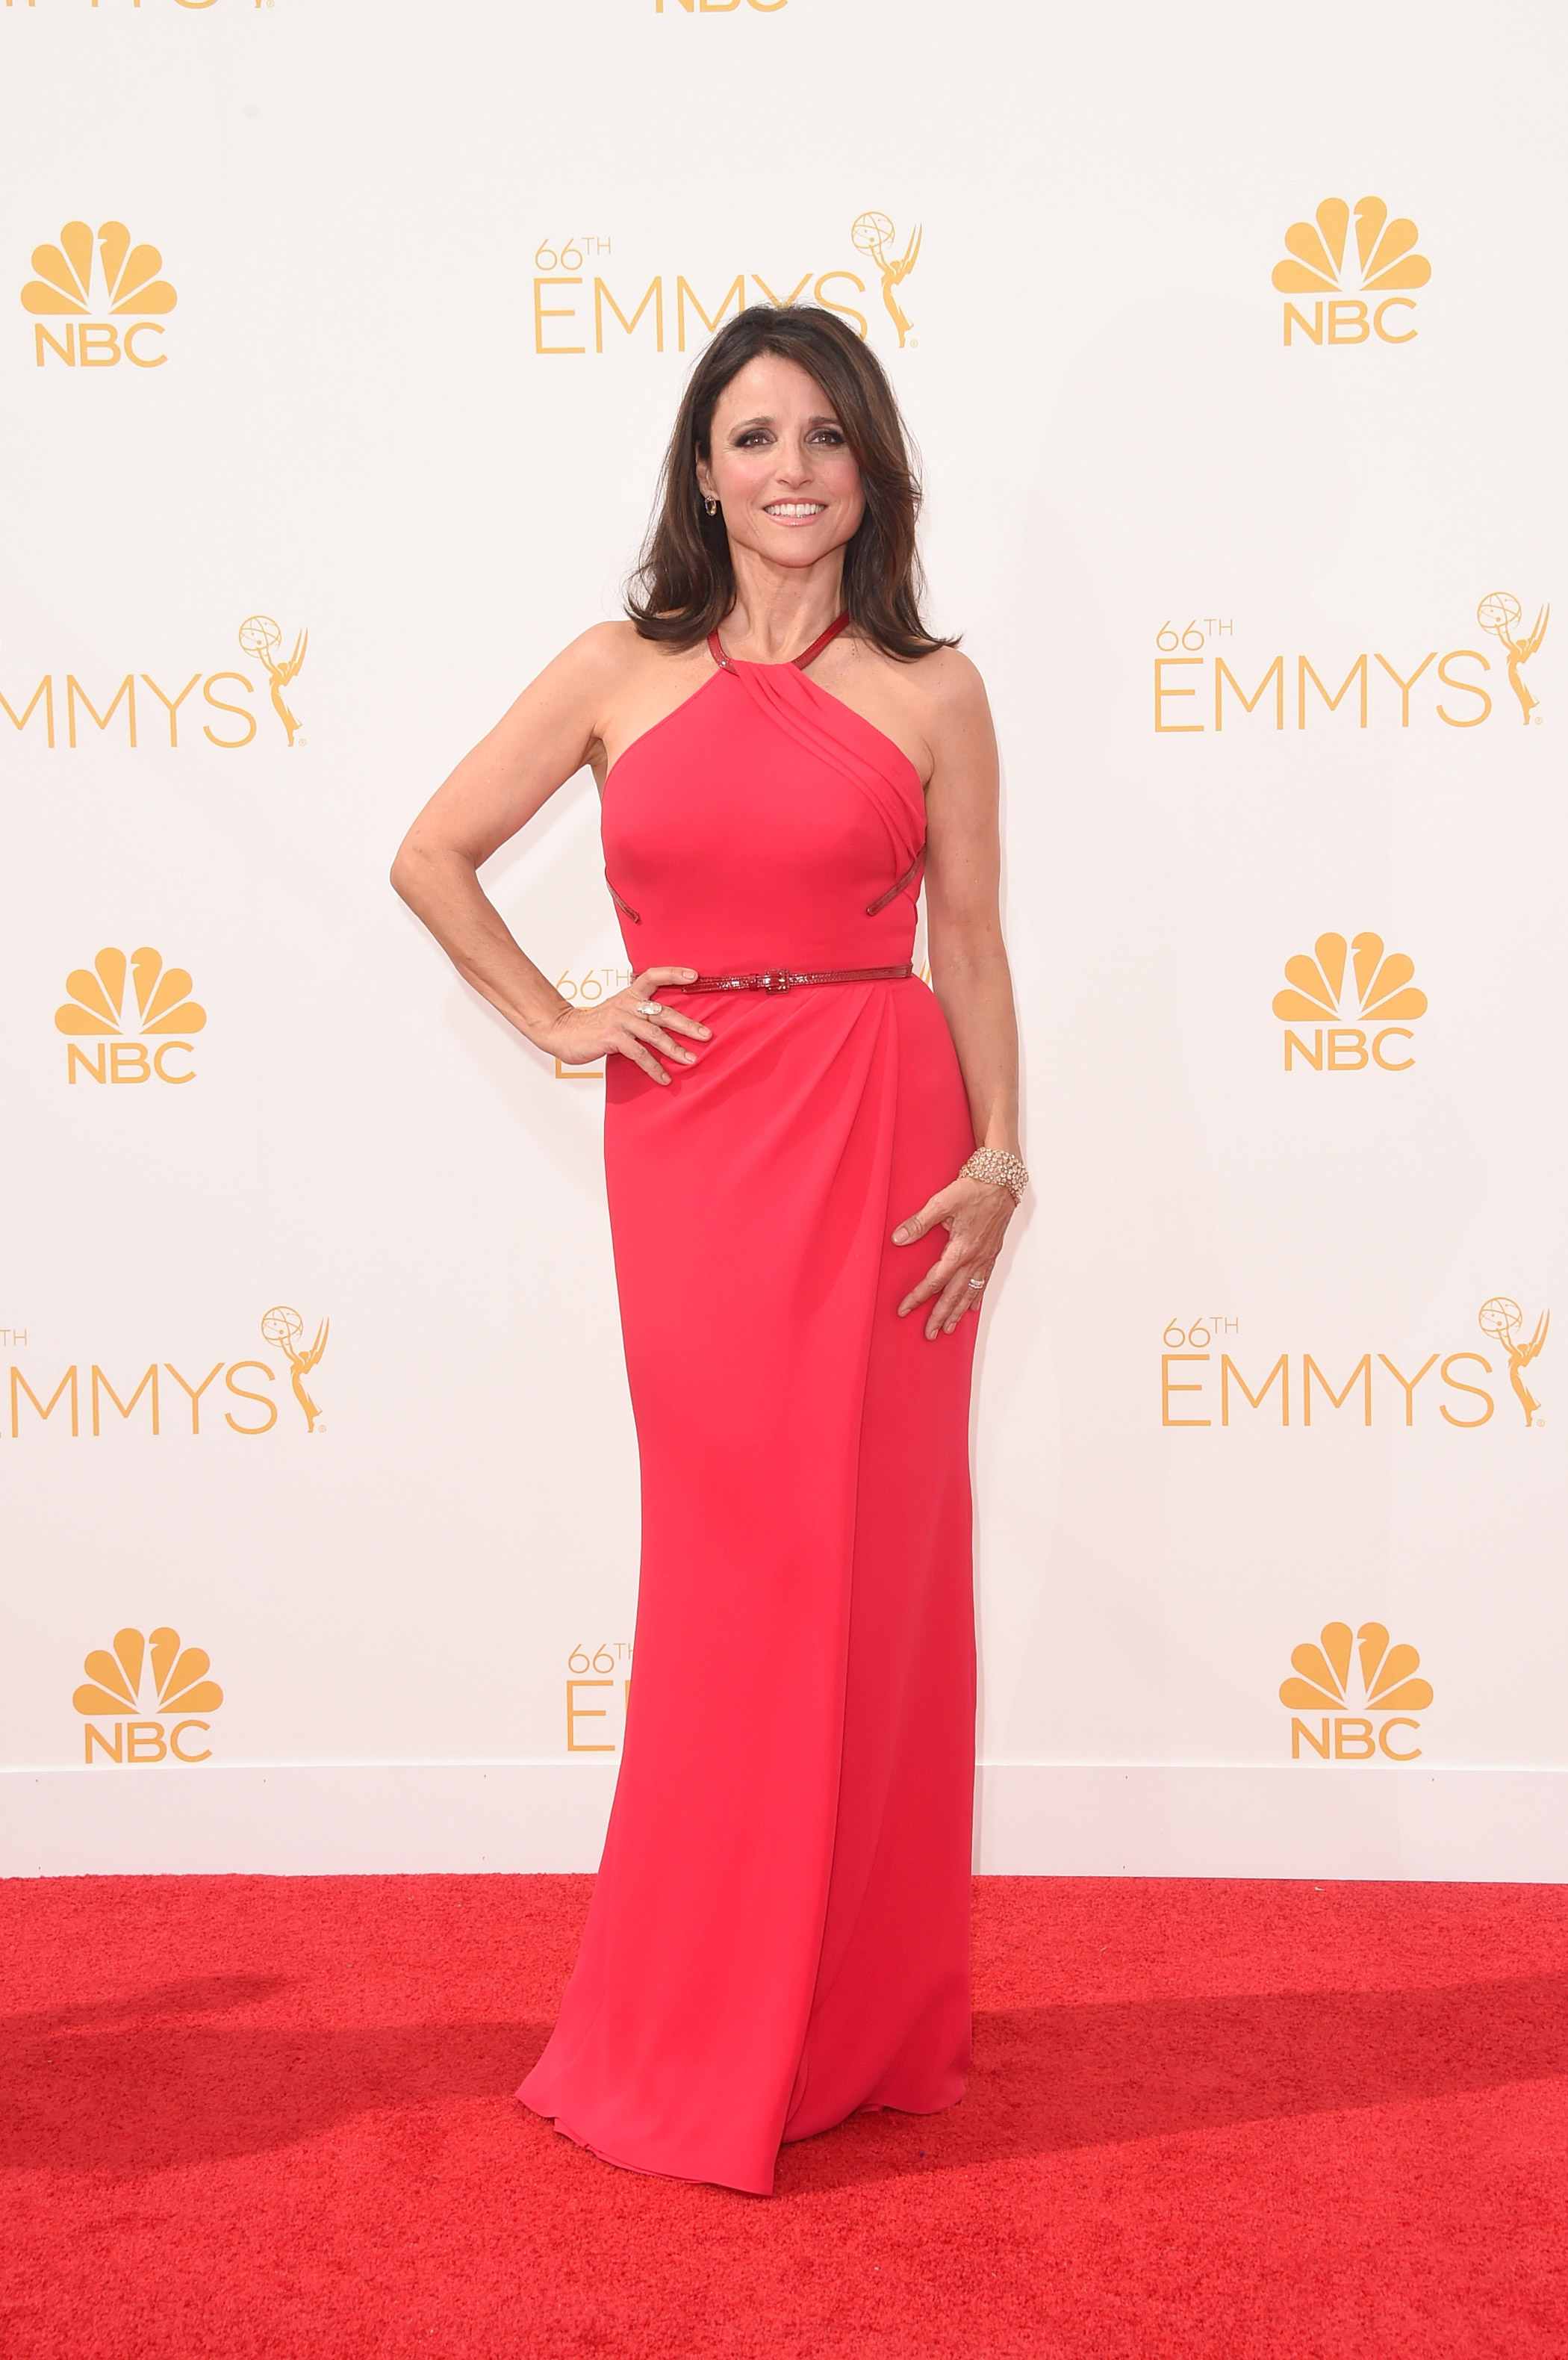 Julia Louis-Dreyfus at the 67th Emmy Award on Sept. 20, 2015 in Los Angeles.